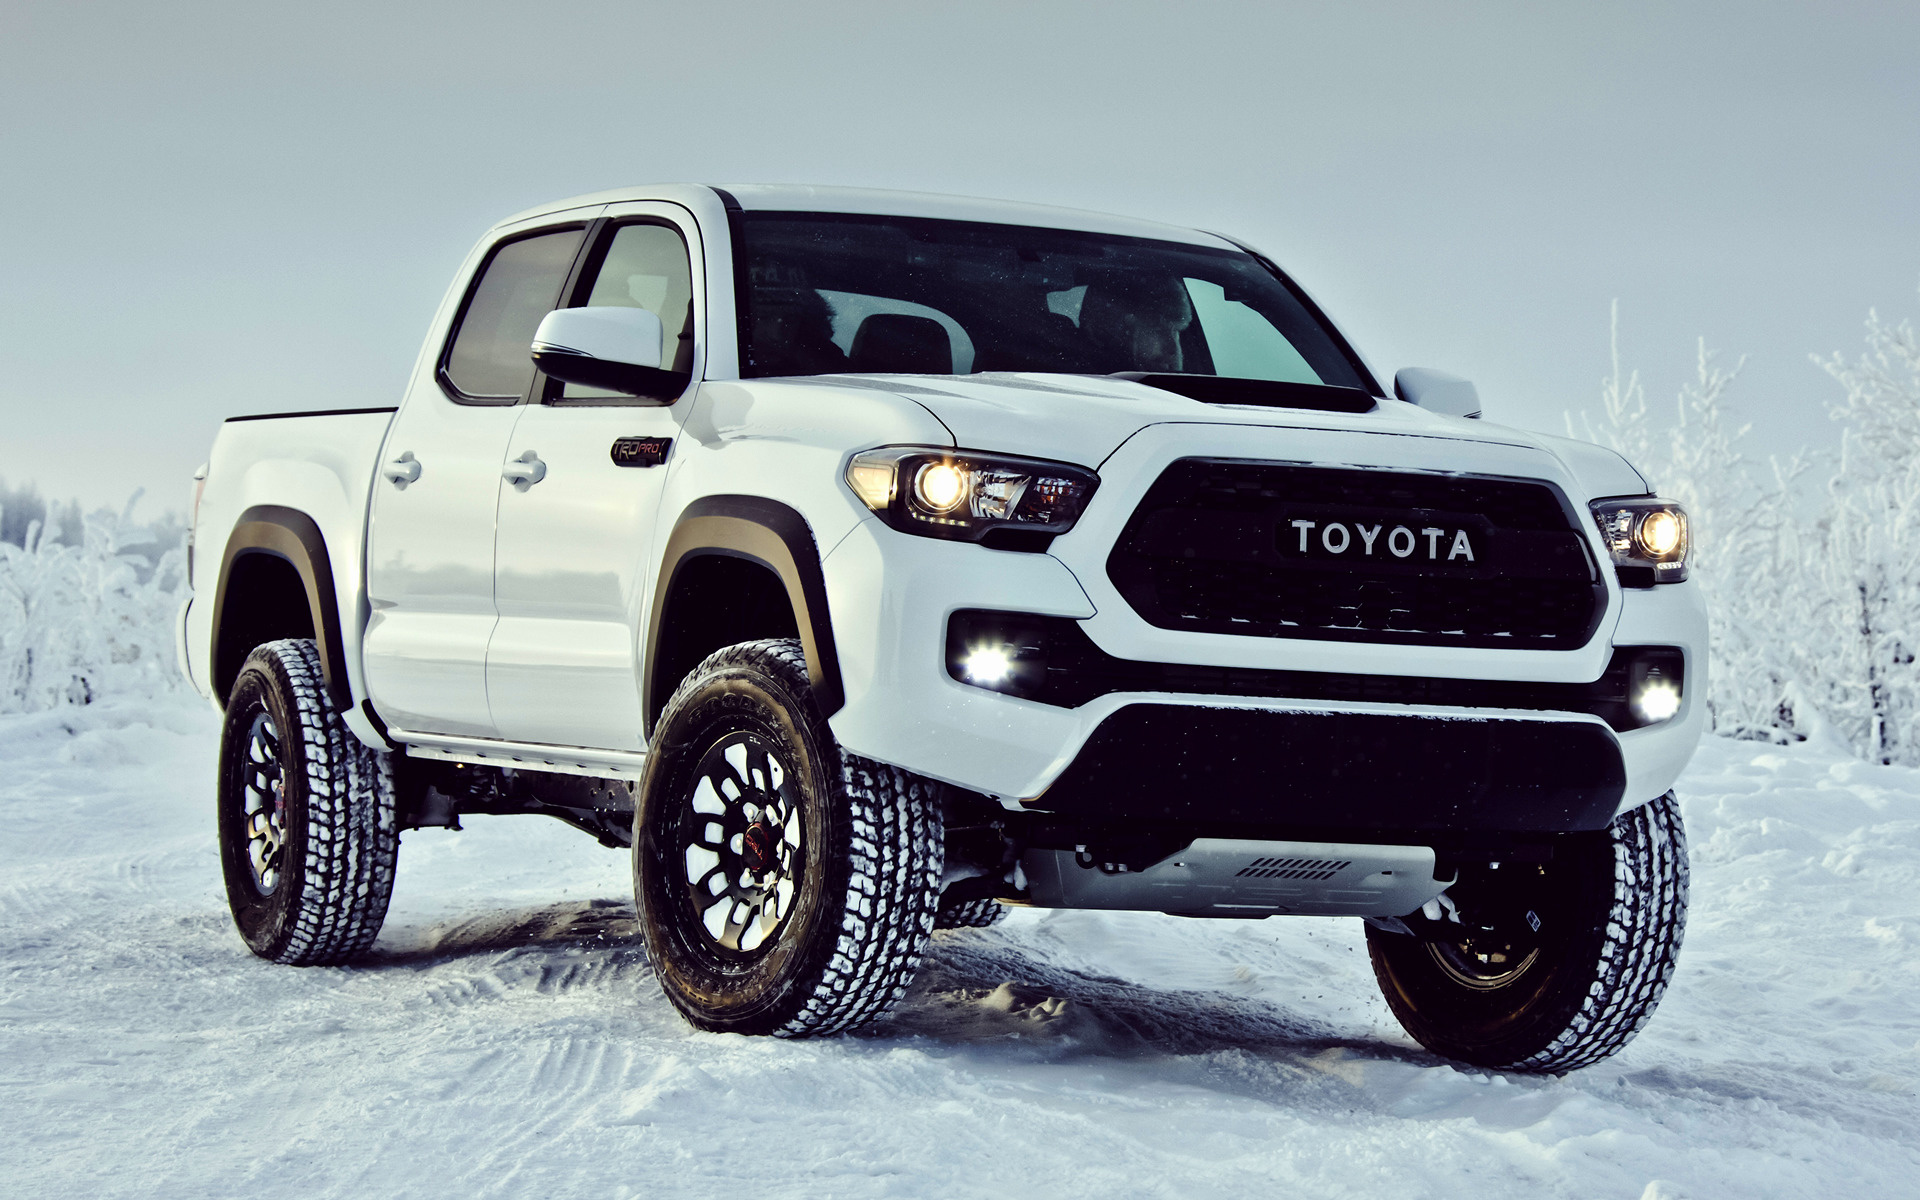 Toyota Tacoma Trd Pro Double Cab Car Wallpaper